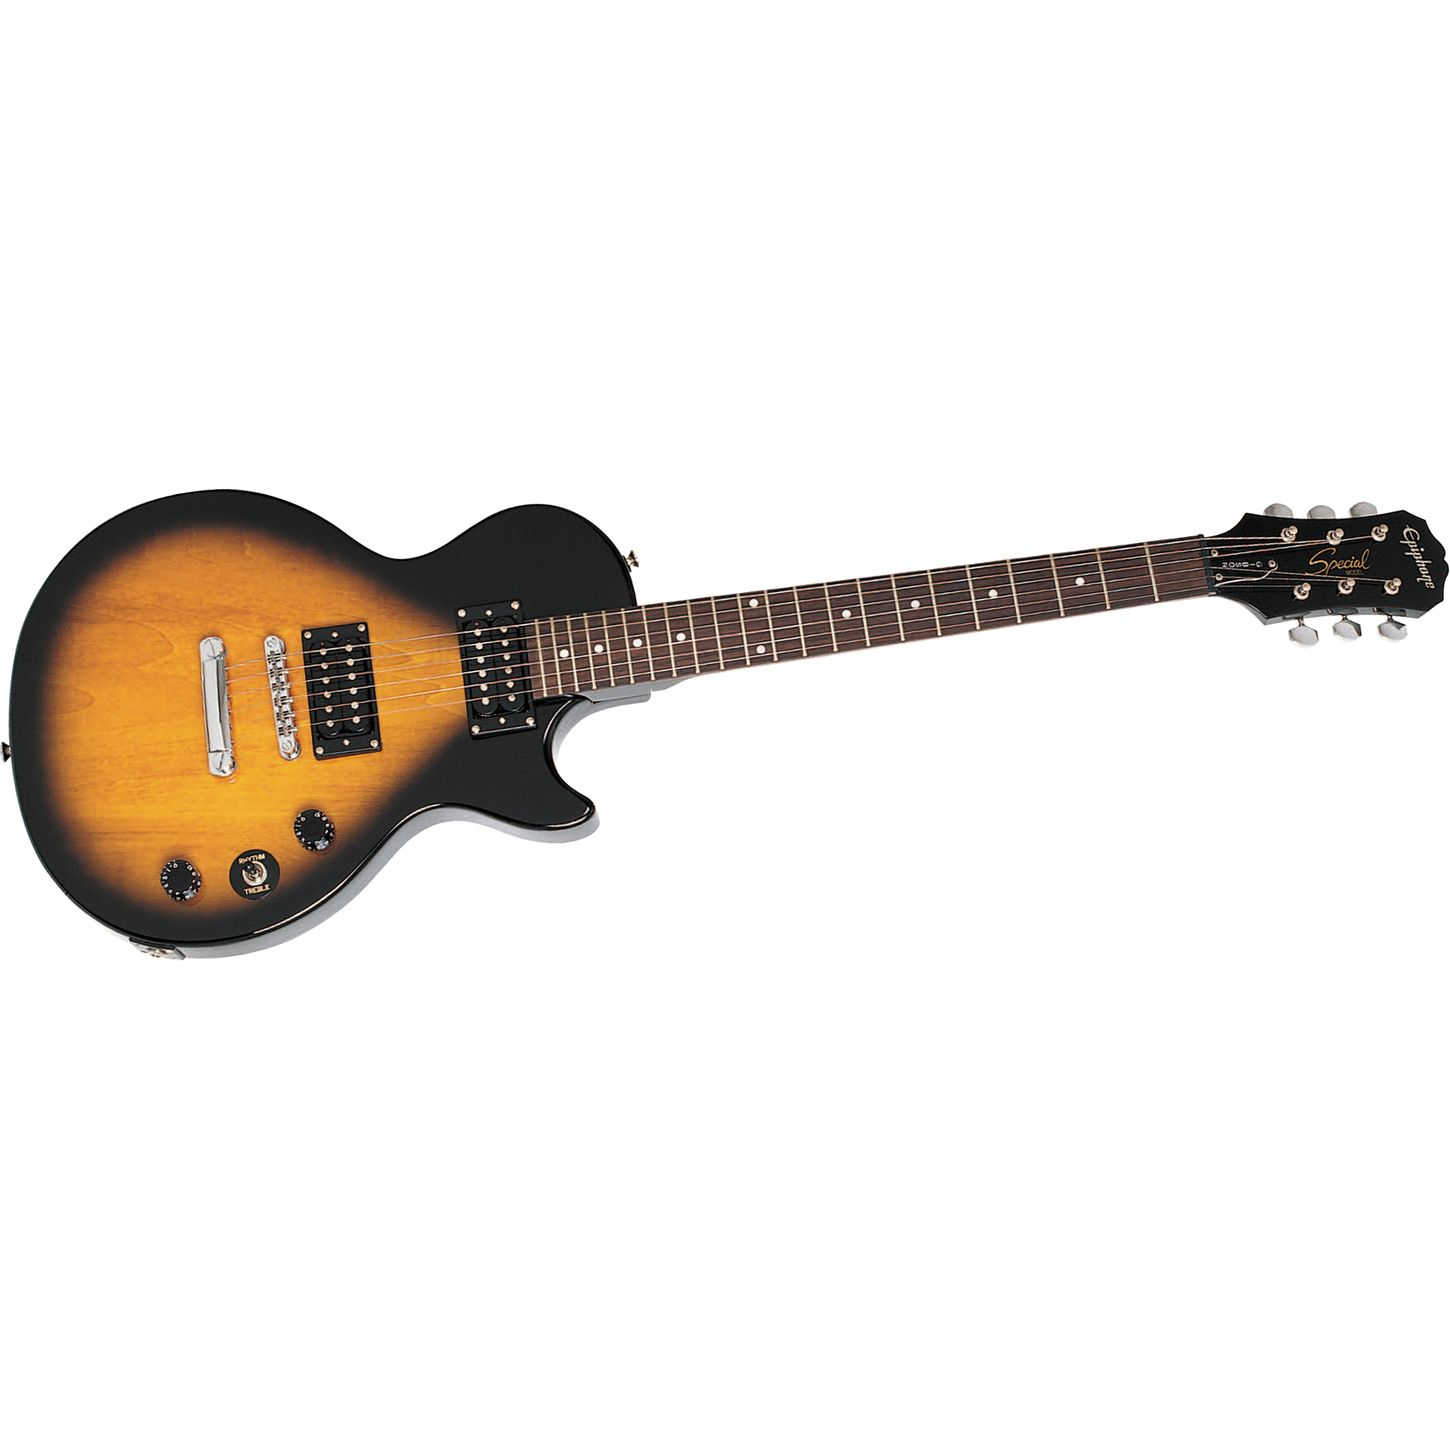 gearfeel reviews epiphone les paul special ii. Black Bedroom Furniture Sets. Home Design Ideas